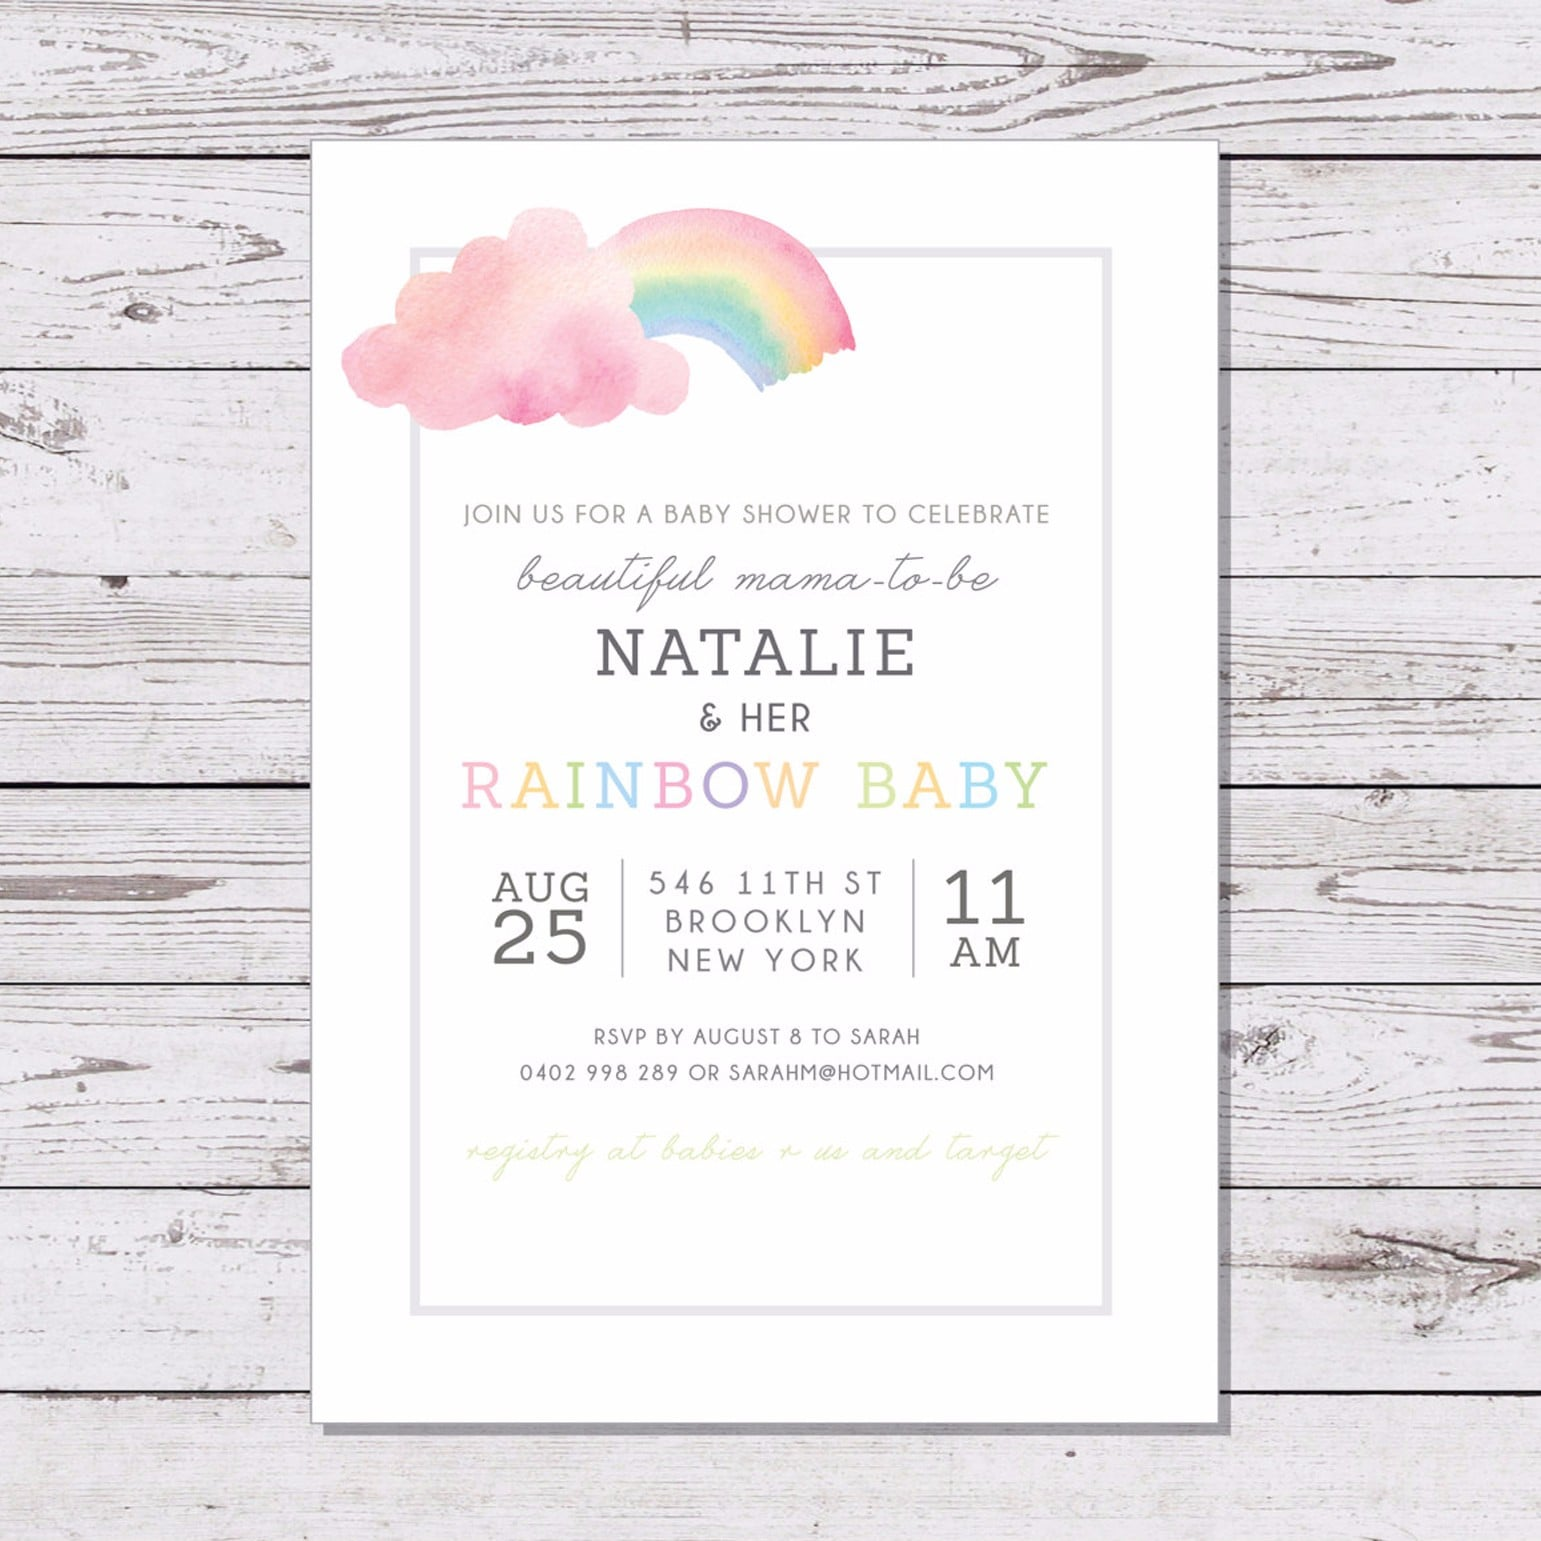 Water Color Rainbow Baby Shower Invitation ($15) | Rainbow Baby ...